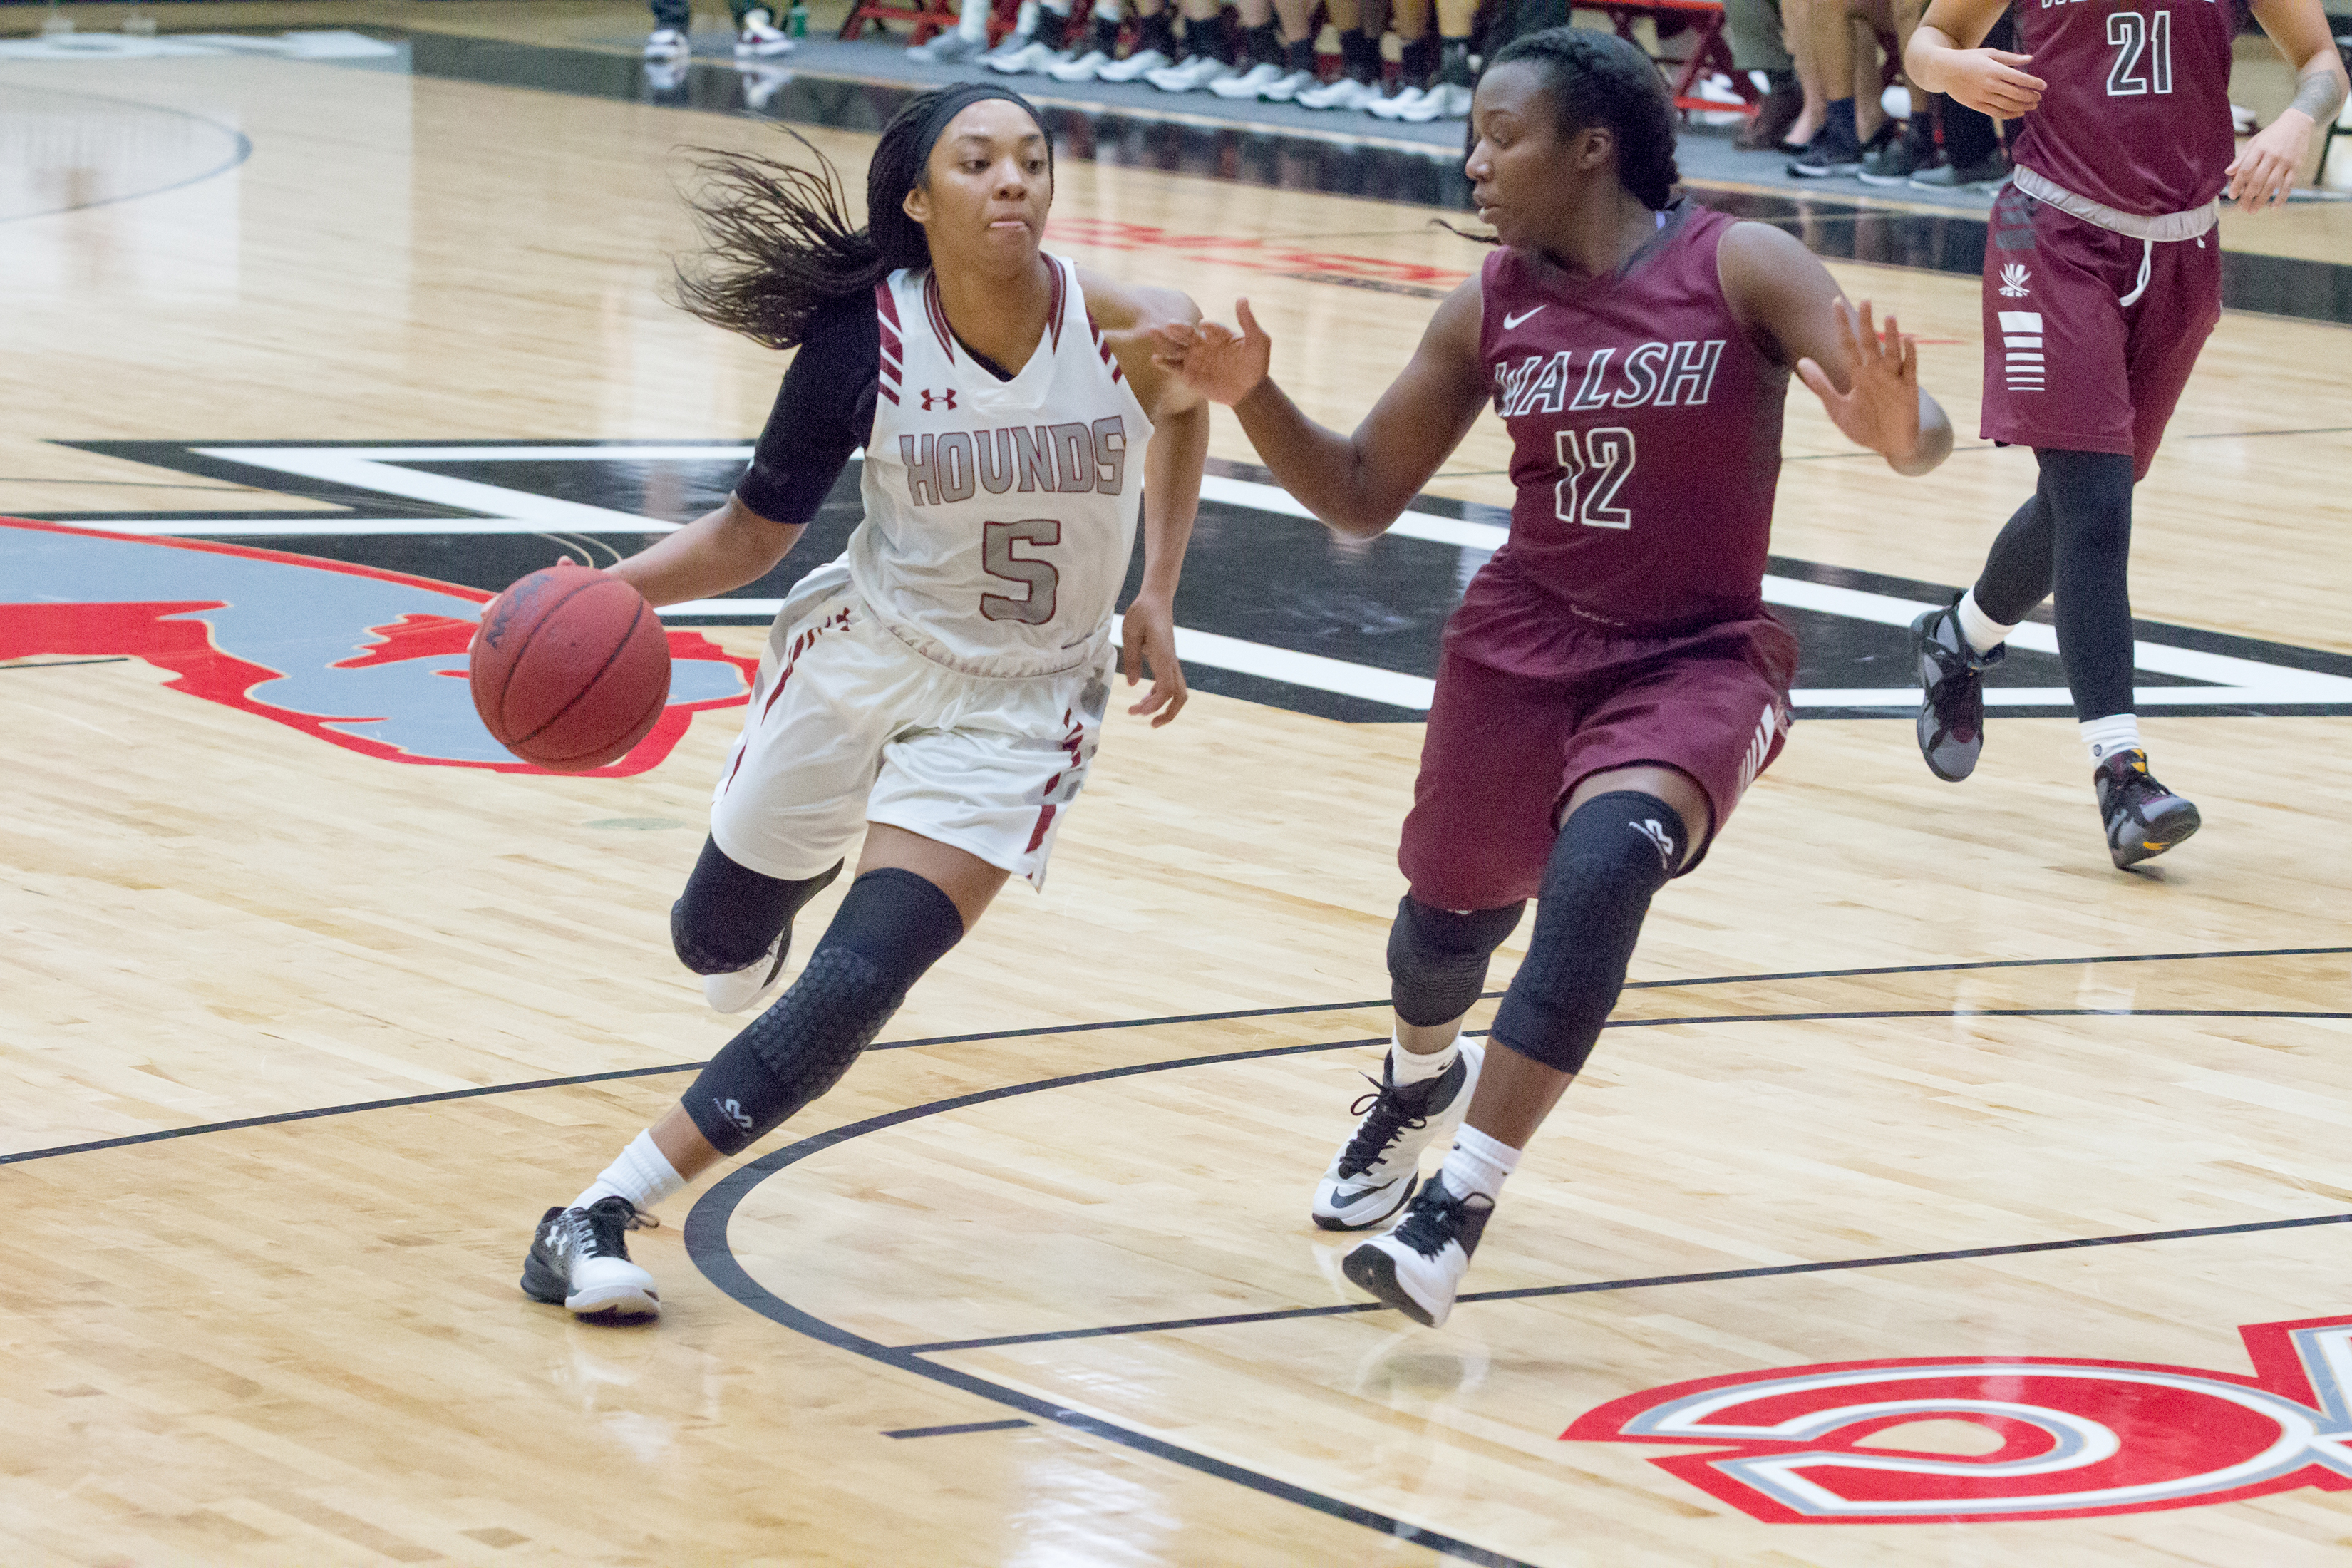 Junior guard Devin Ferguson drives up the court in a game against Walsh University on Nov. 13. The game was a part of the GLIAC/GLVC Challenge hosted by UIndy. Photo by Jennifer Ulery